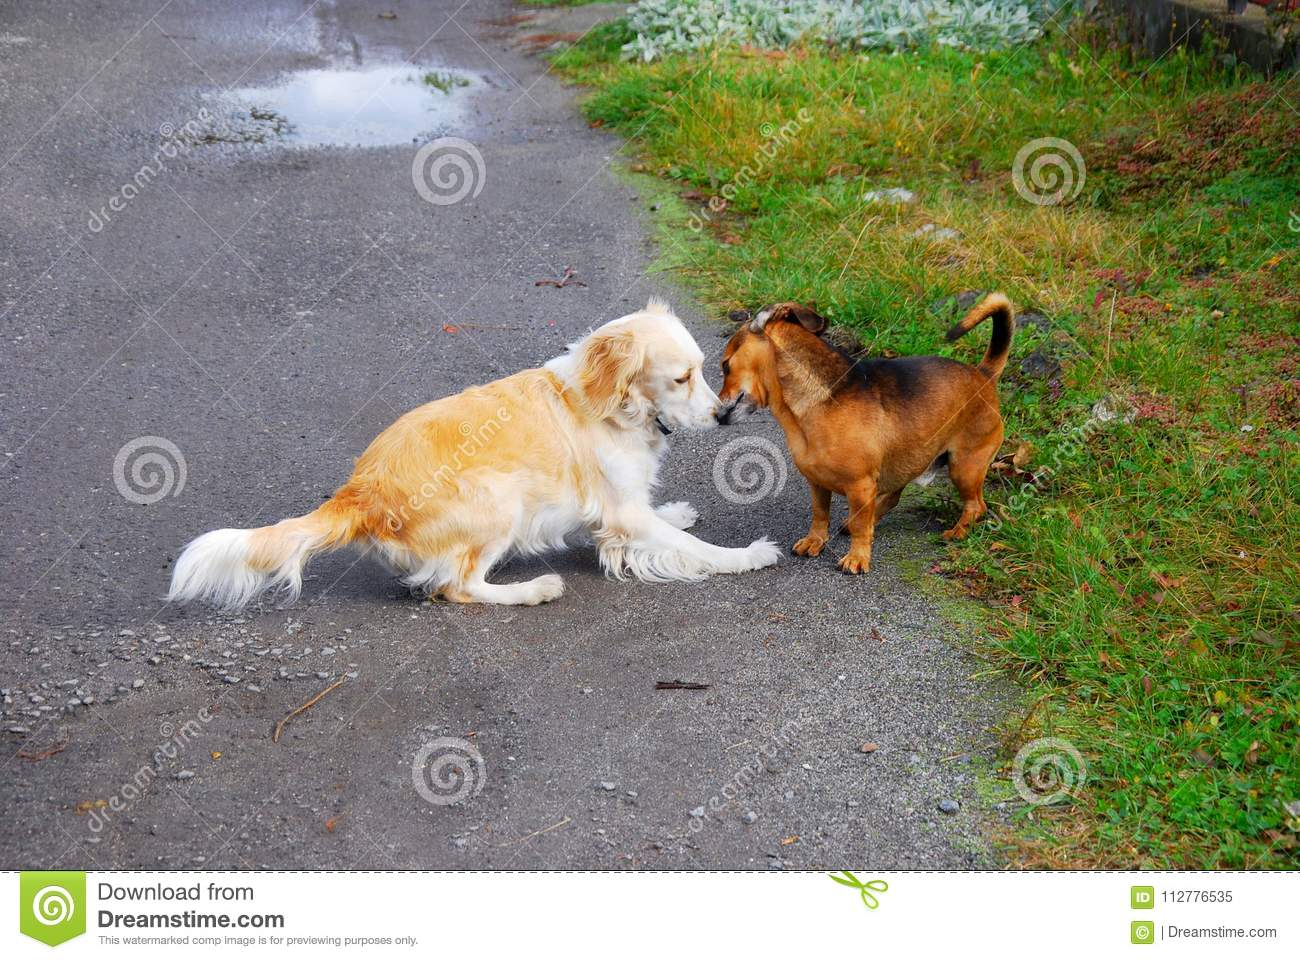 Meeting and acquaintance of two dogs.